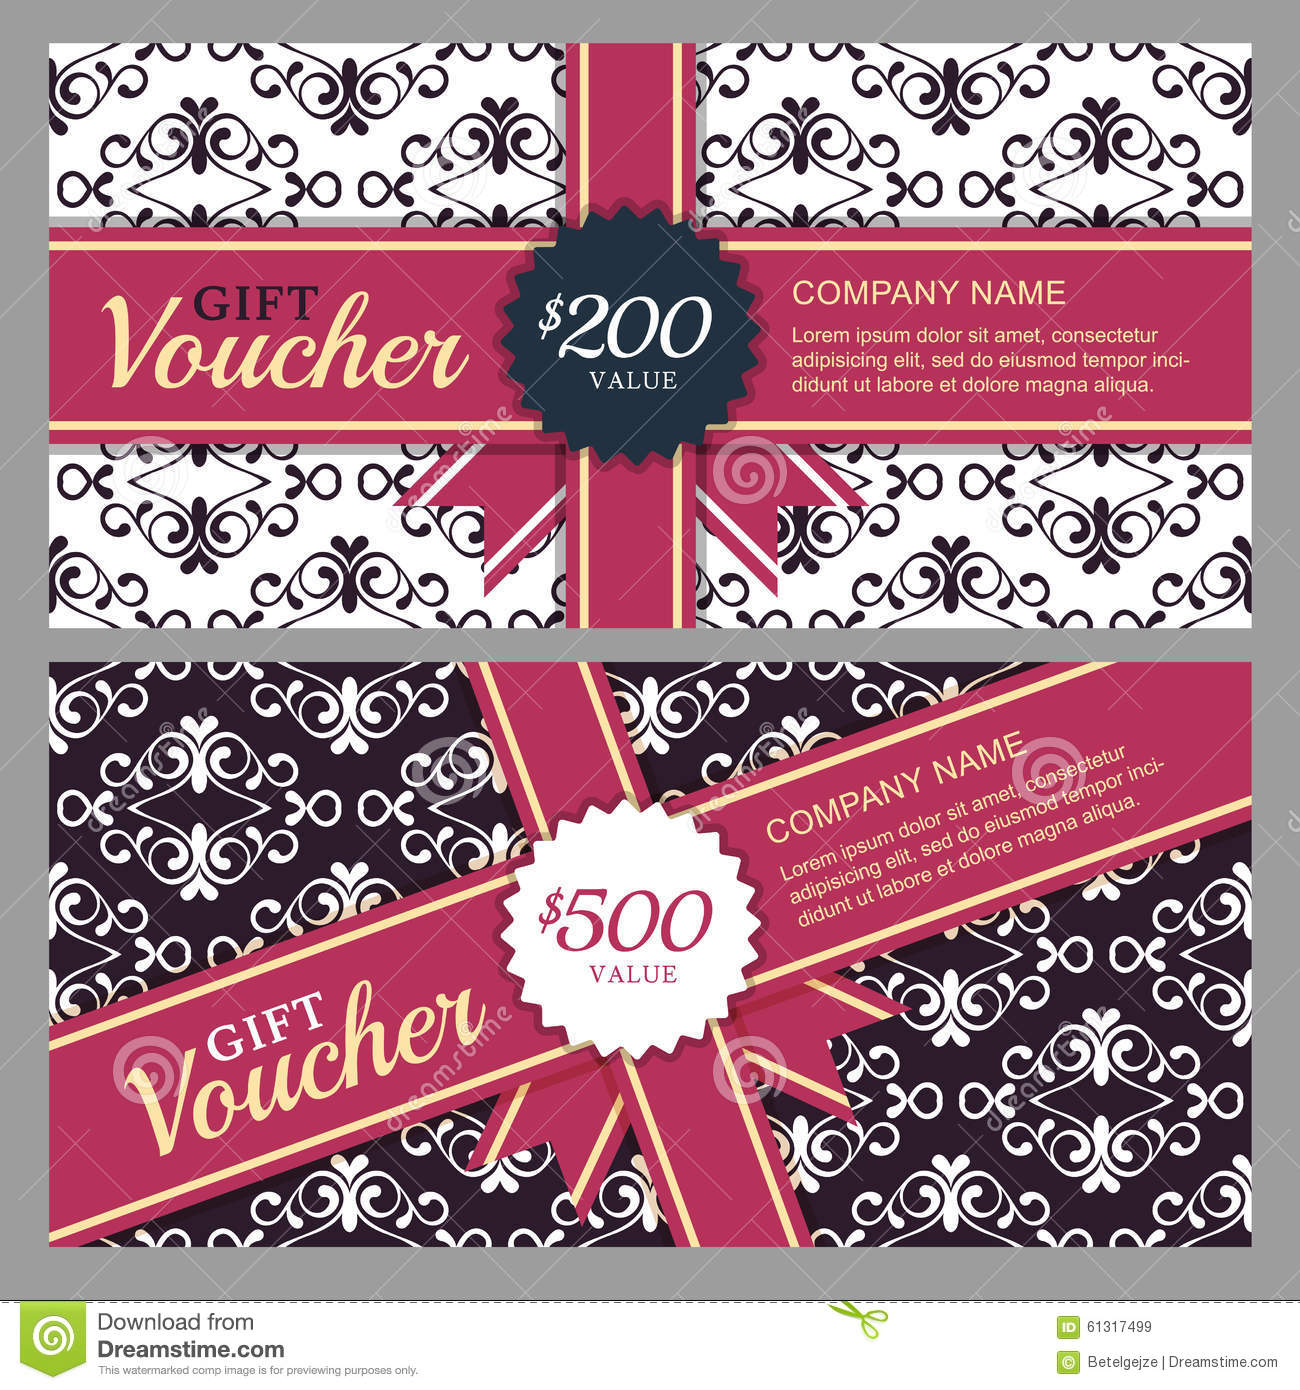 vector gift voucher with black and white ornament